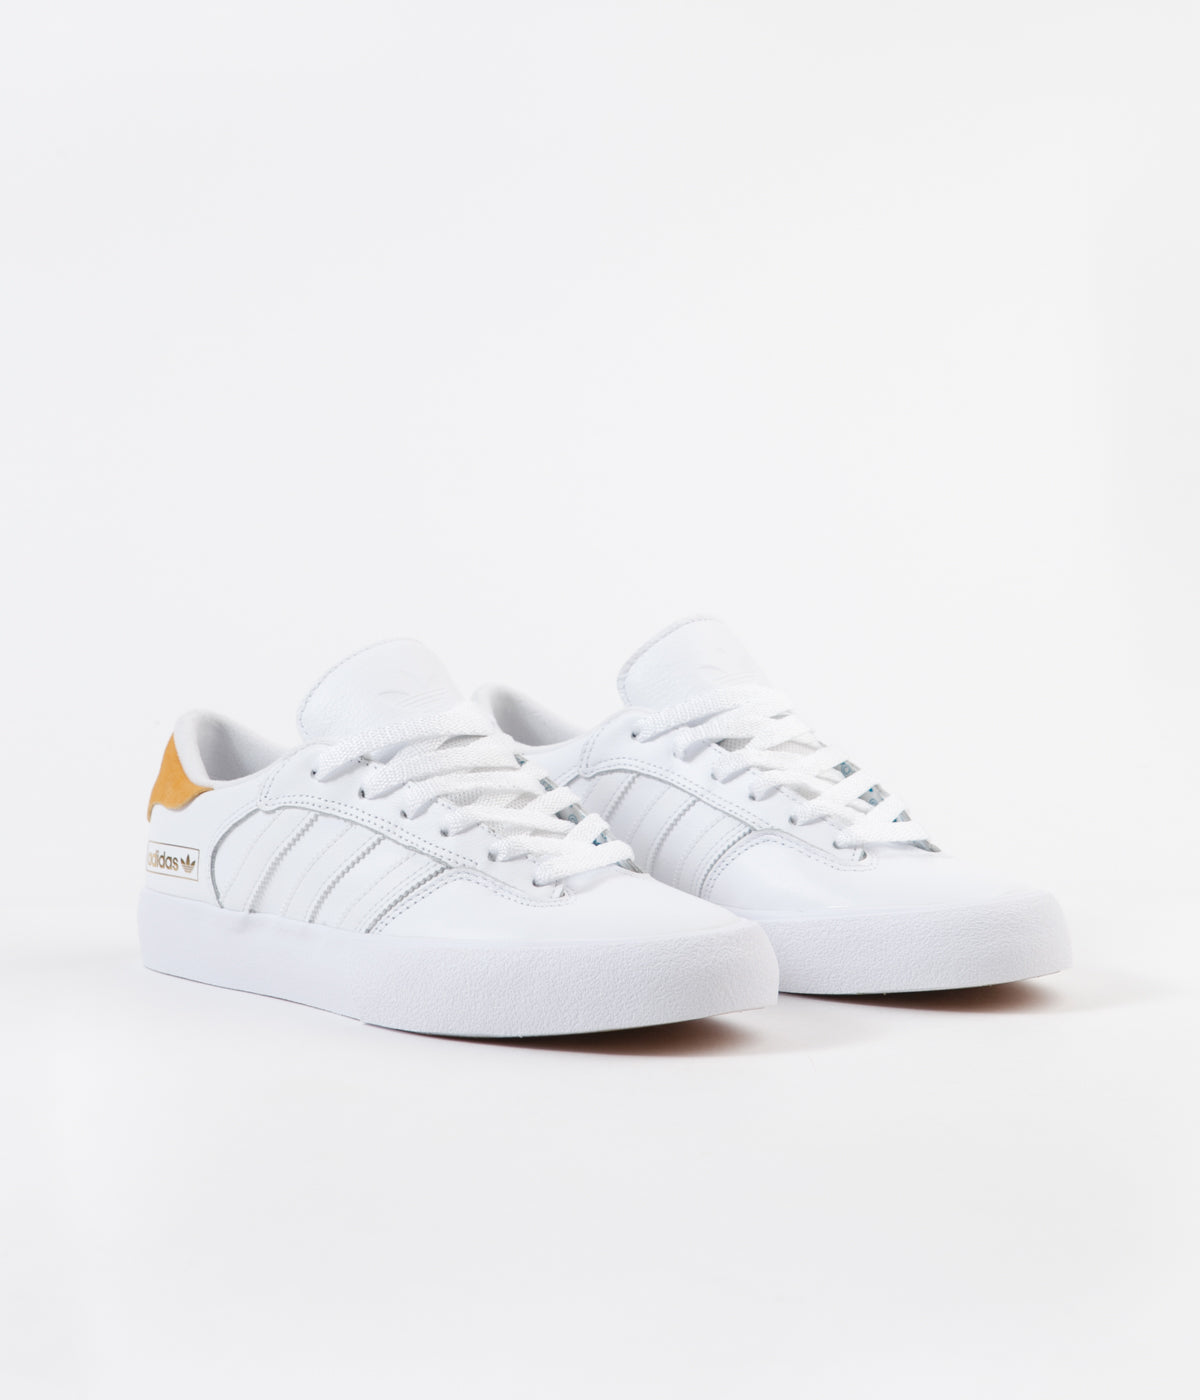 Adidas Matchbreak Super Shoes - White / Tactile Yellow / White